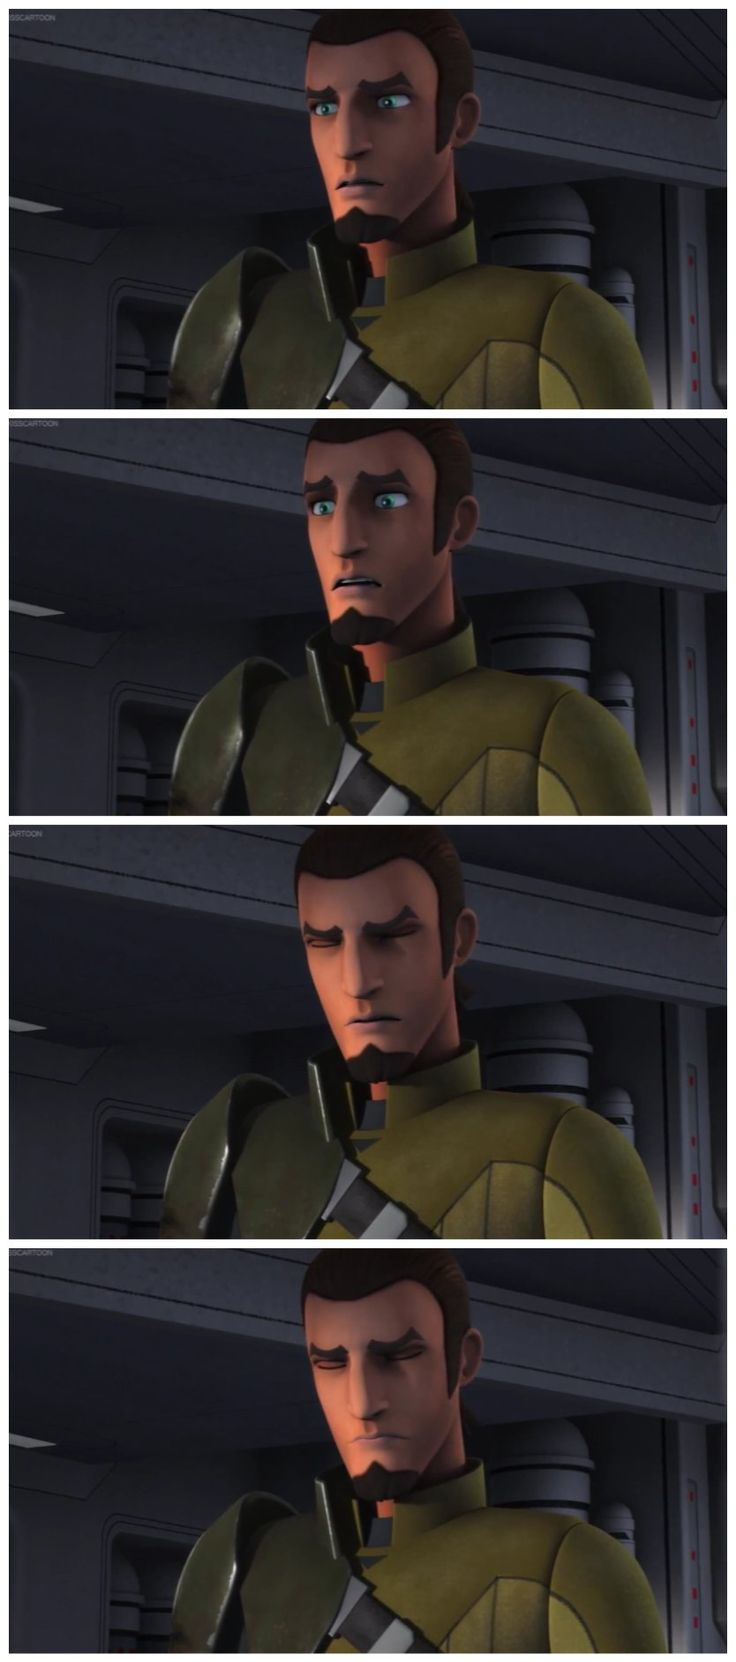 Kanan's reaction to seeing Hera's destroyed ship come out of hyperspace coupled with Sabine's panicked cries for help is absolutely heartbreaking!